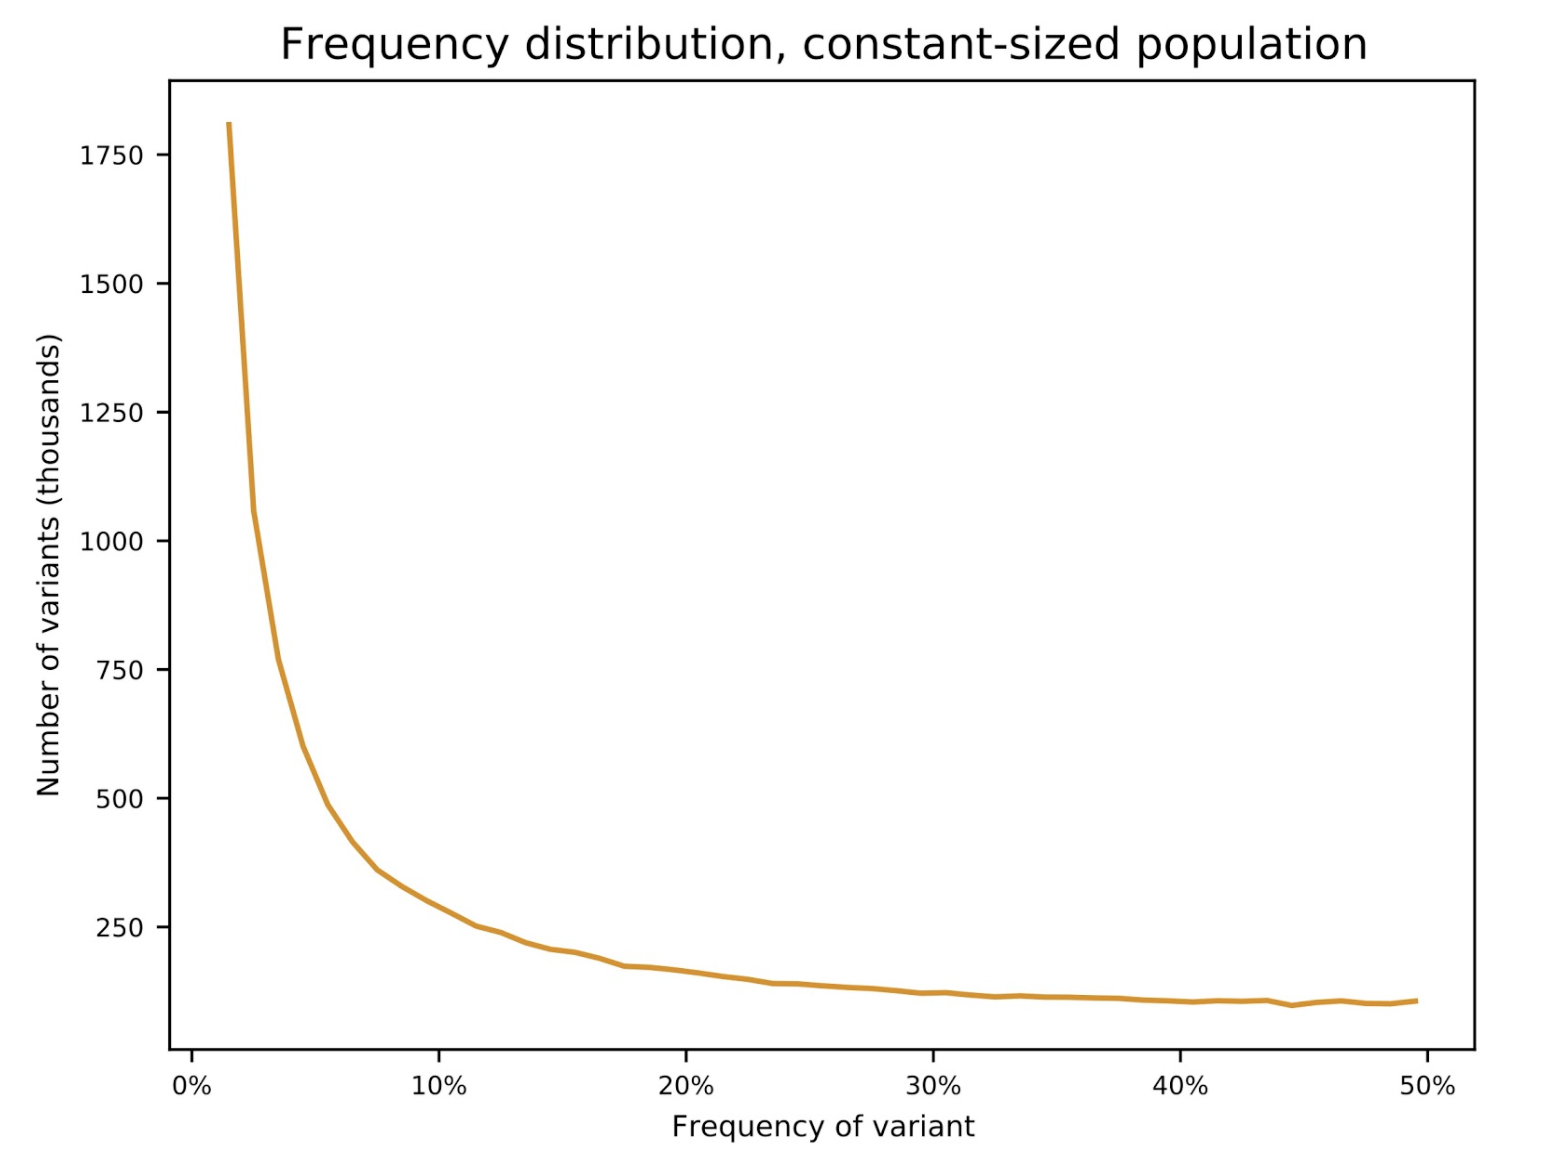 Steve Schaffner: Frequency distribution, constant-sized population